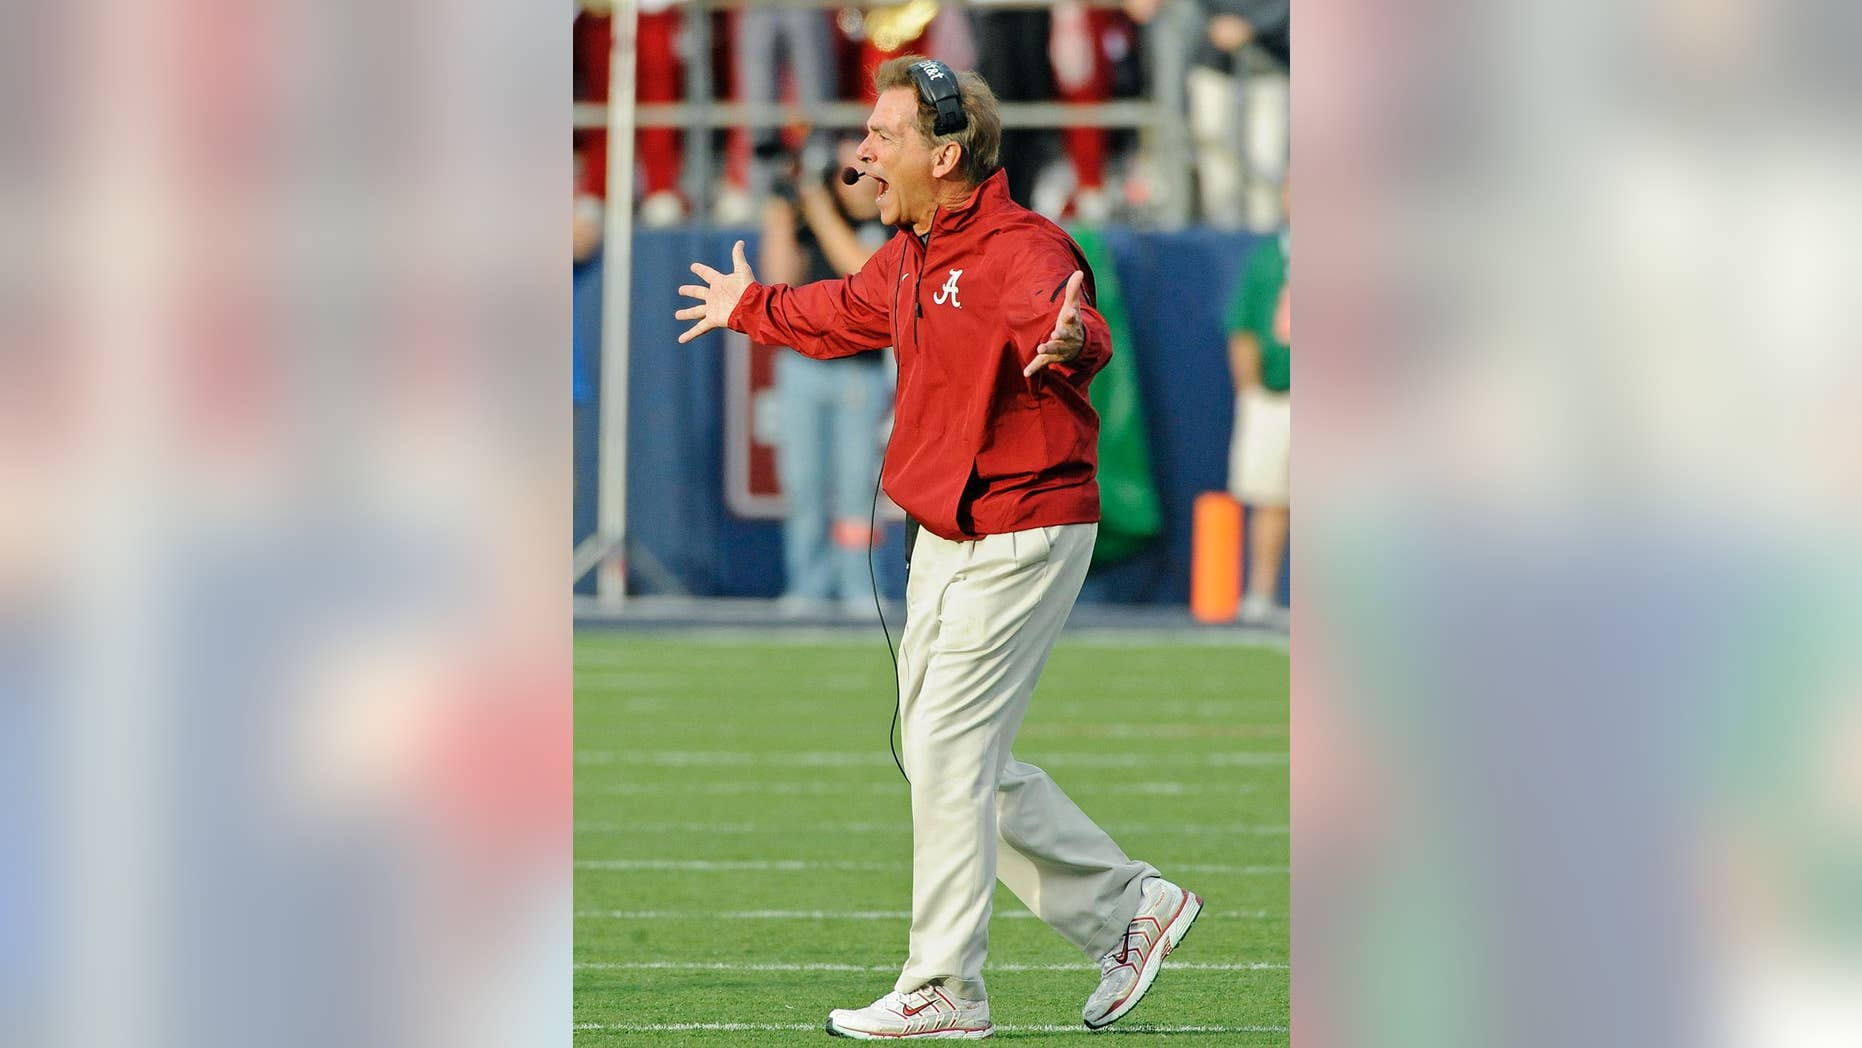 Alabama head coach Nick Saban reacts during the second half of an NCAA college football game against Mississippi in Oxford, Miss., Saturday, Oct. 4, 2014. (AP Photo/The Daily Mississippian, Thomas Graning)